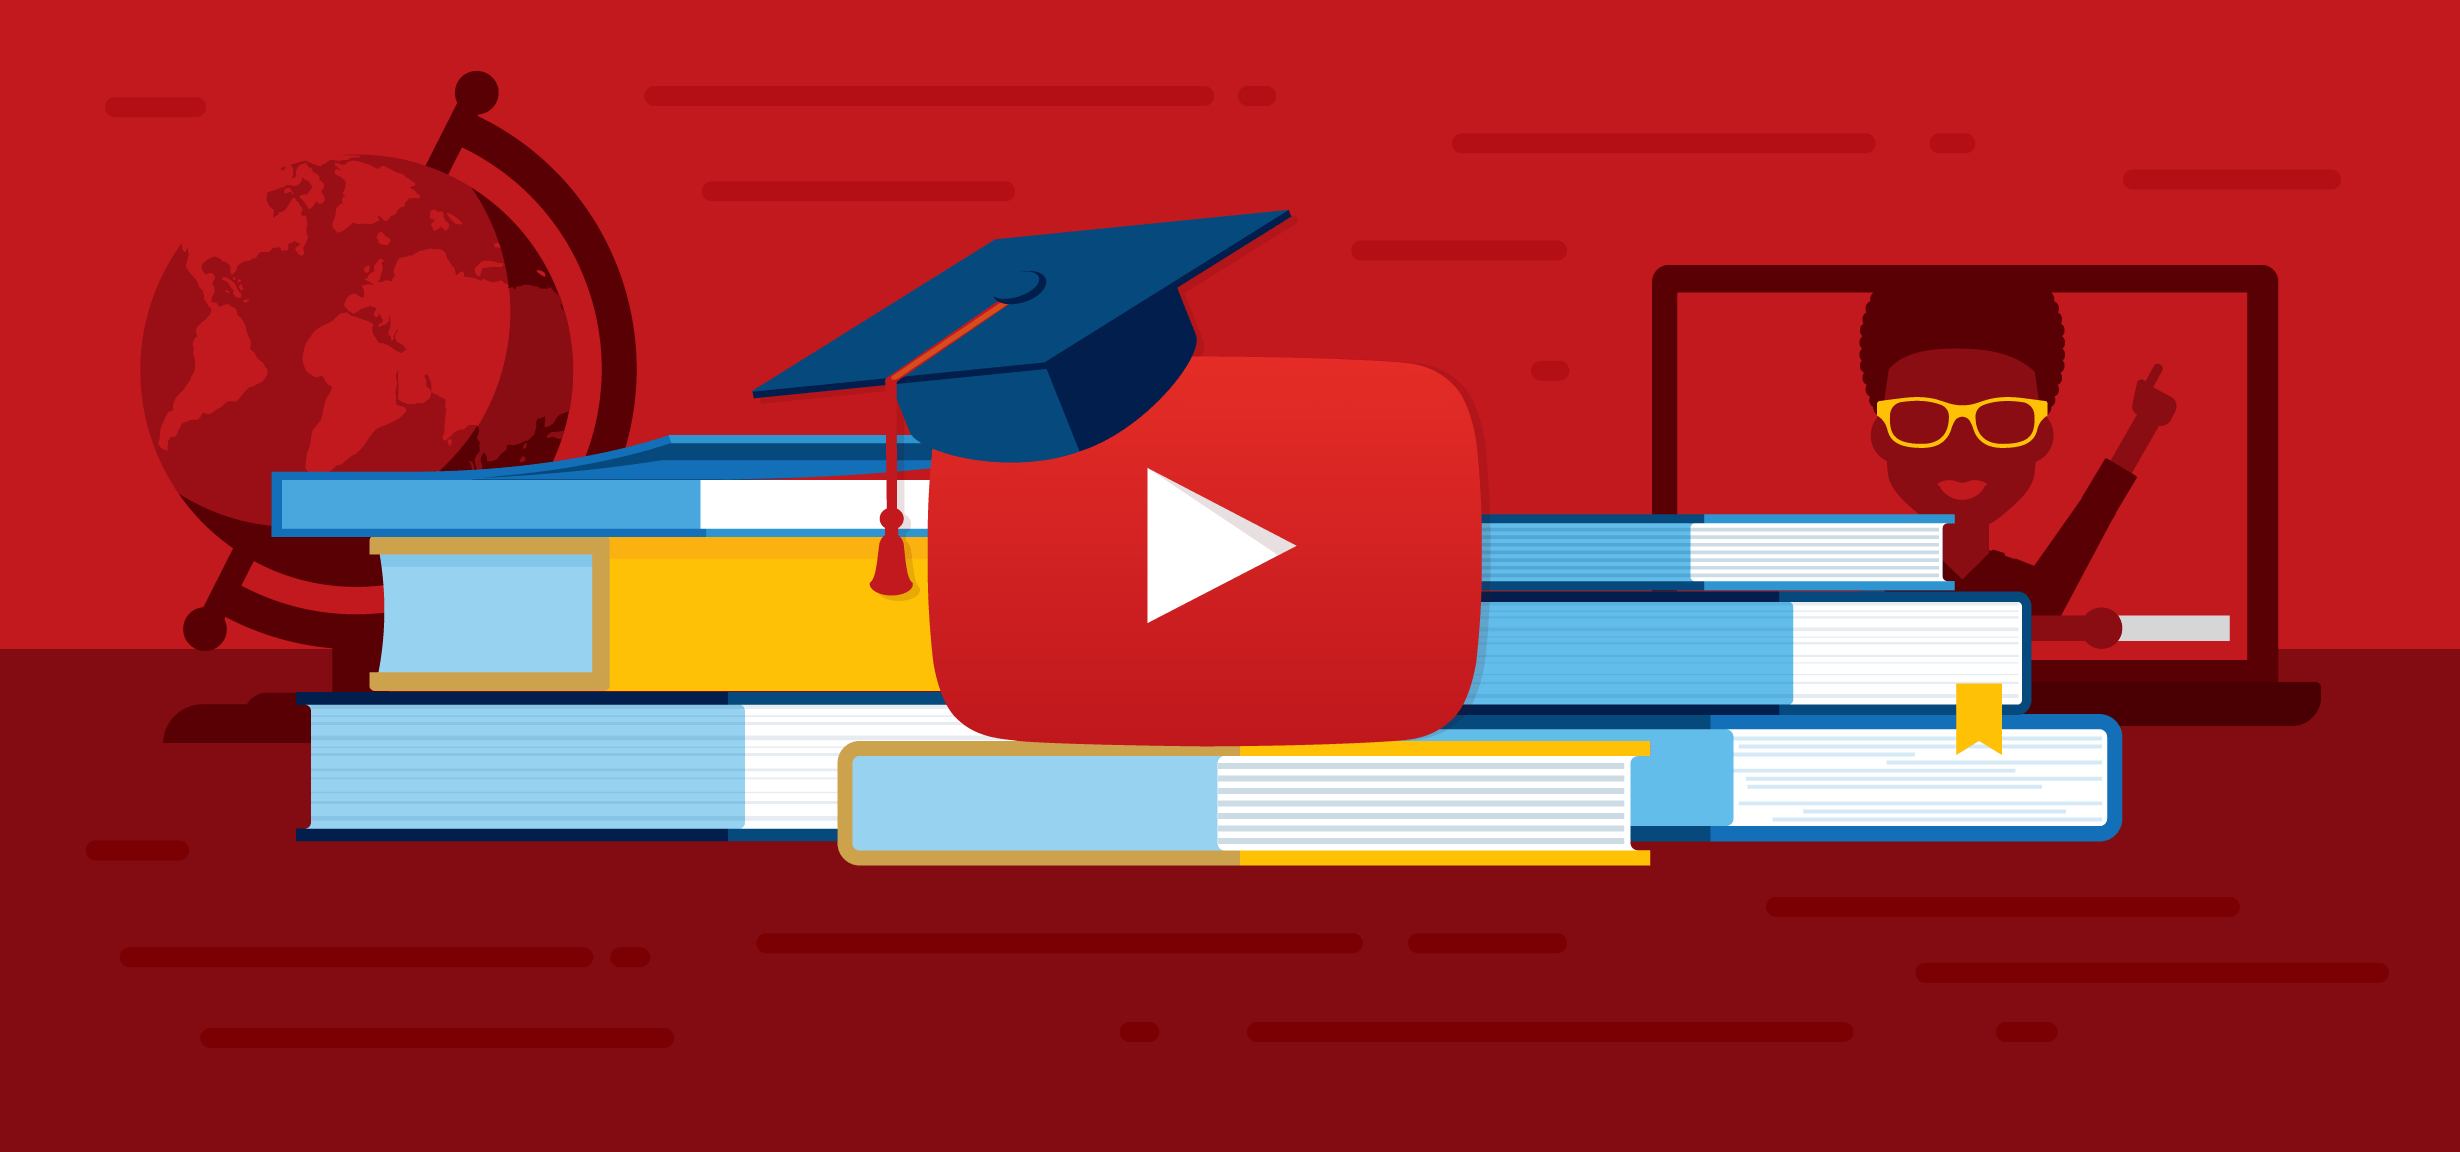 Los 'edutubers', una tendencia que quiere tomarse a YouTube | DPLNews